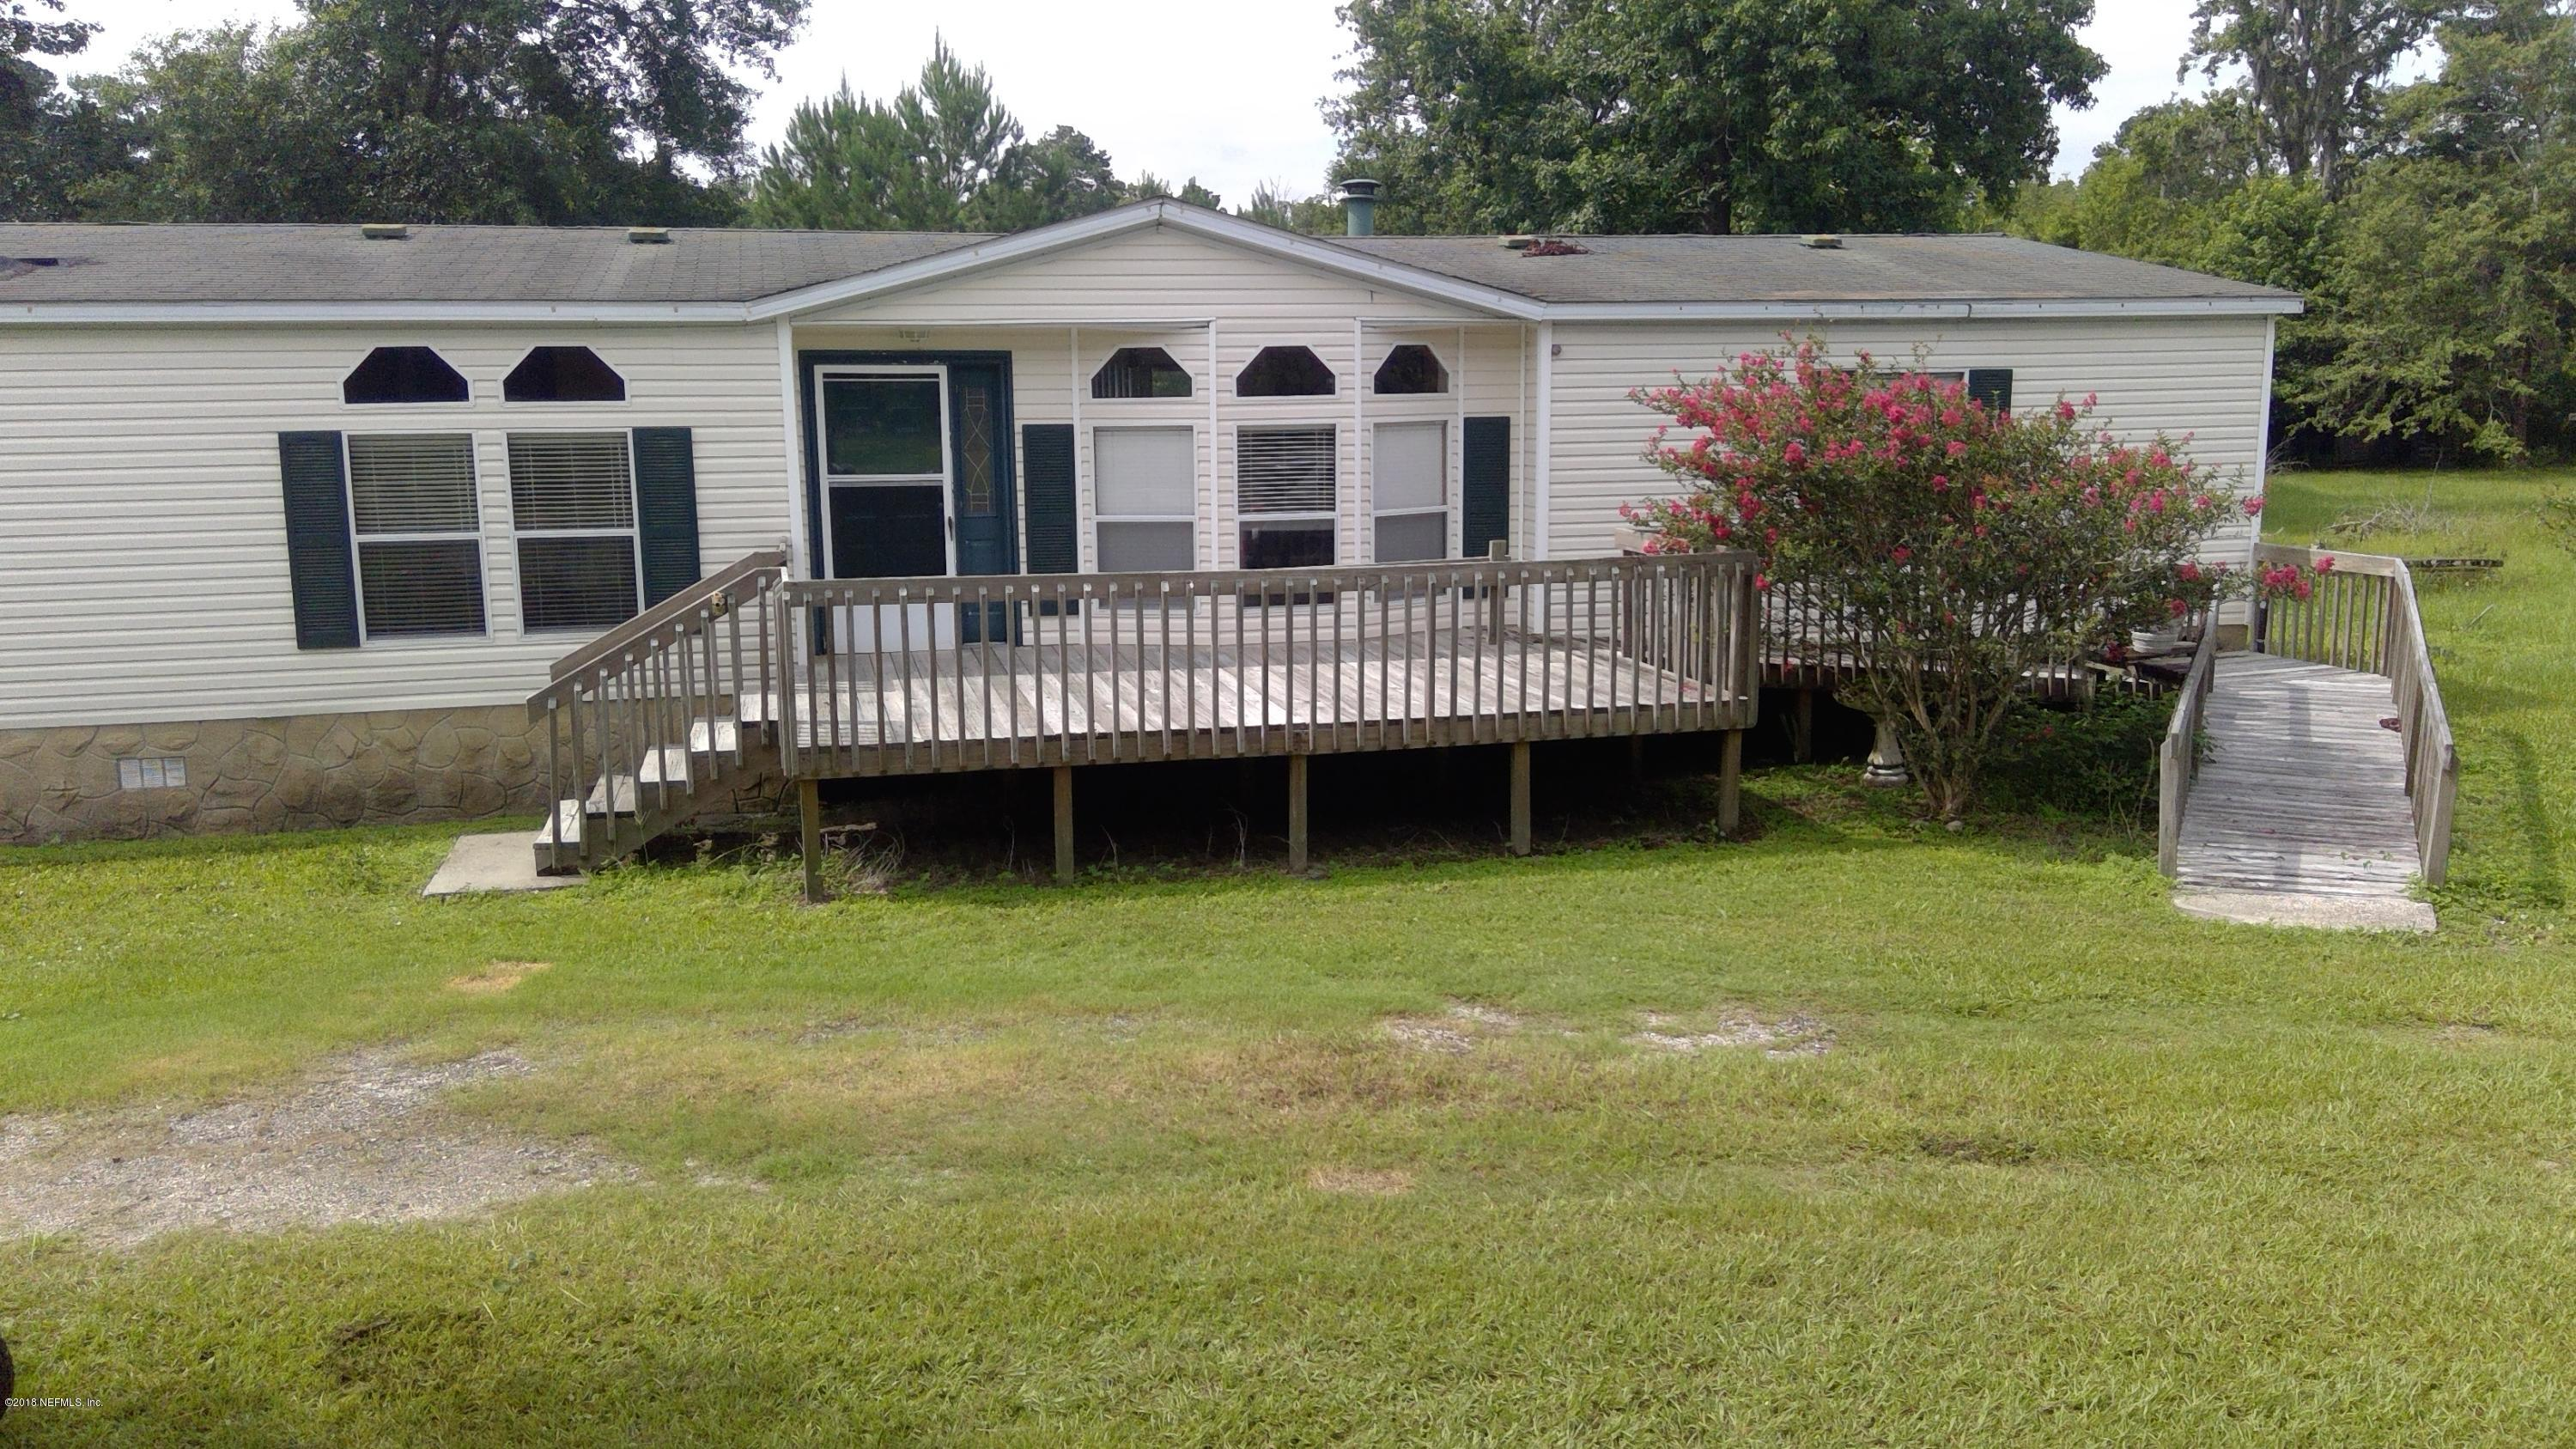 15364 YELLOW BLUFF, JACKSONVILLE, FLORIDA 32226, 3 Bedrooms Bedrooms, ,2 BathroomsBathrooms,Residential - mobile home,For sale,YELLOW BLUFF,945950